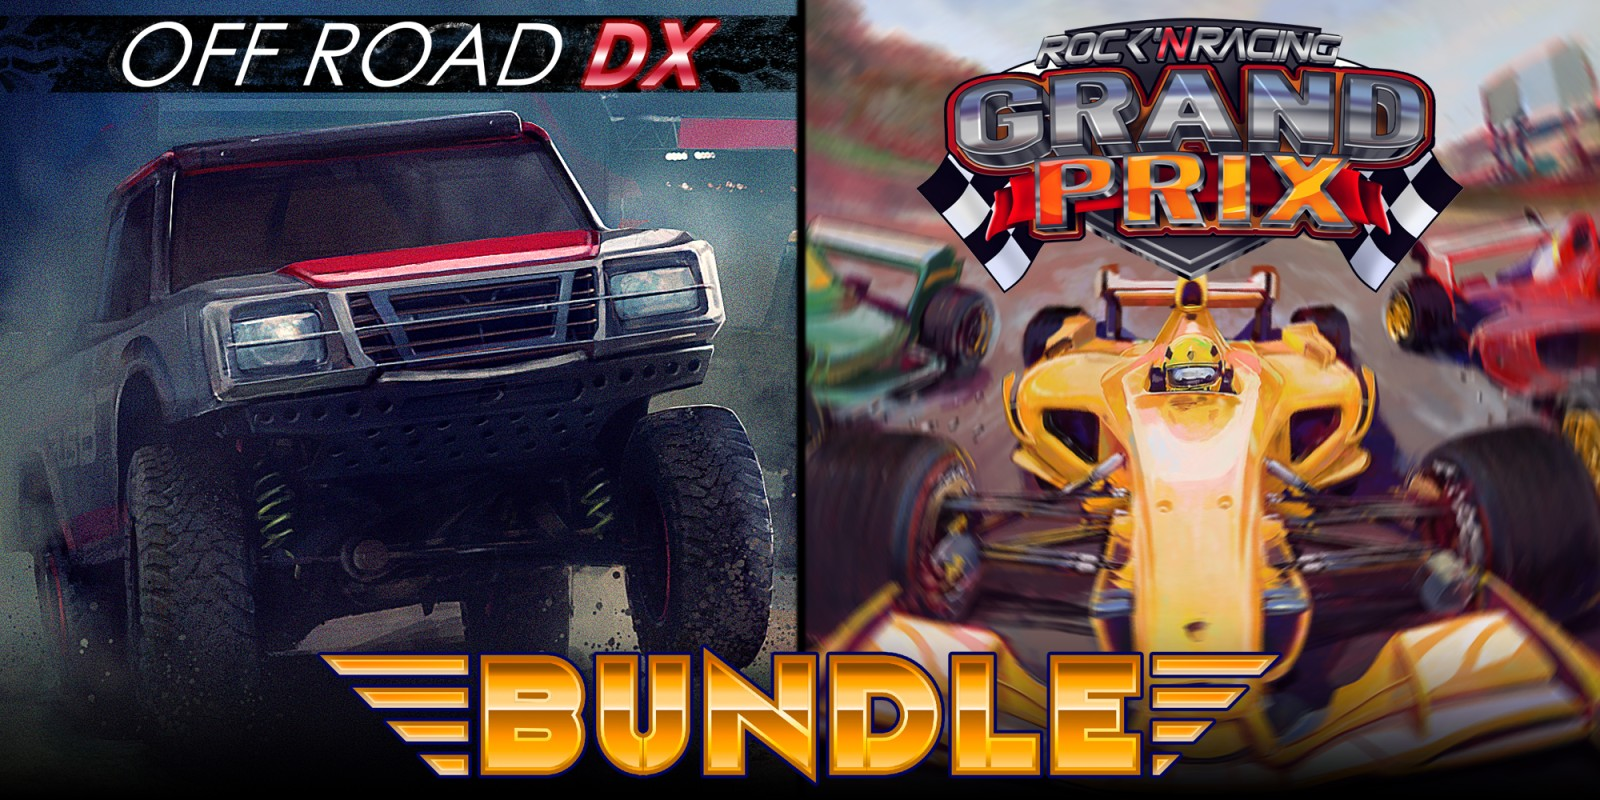 Rock 'N Racing Bundle Off Road & Grand Prix